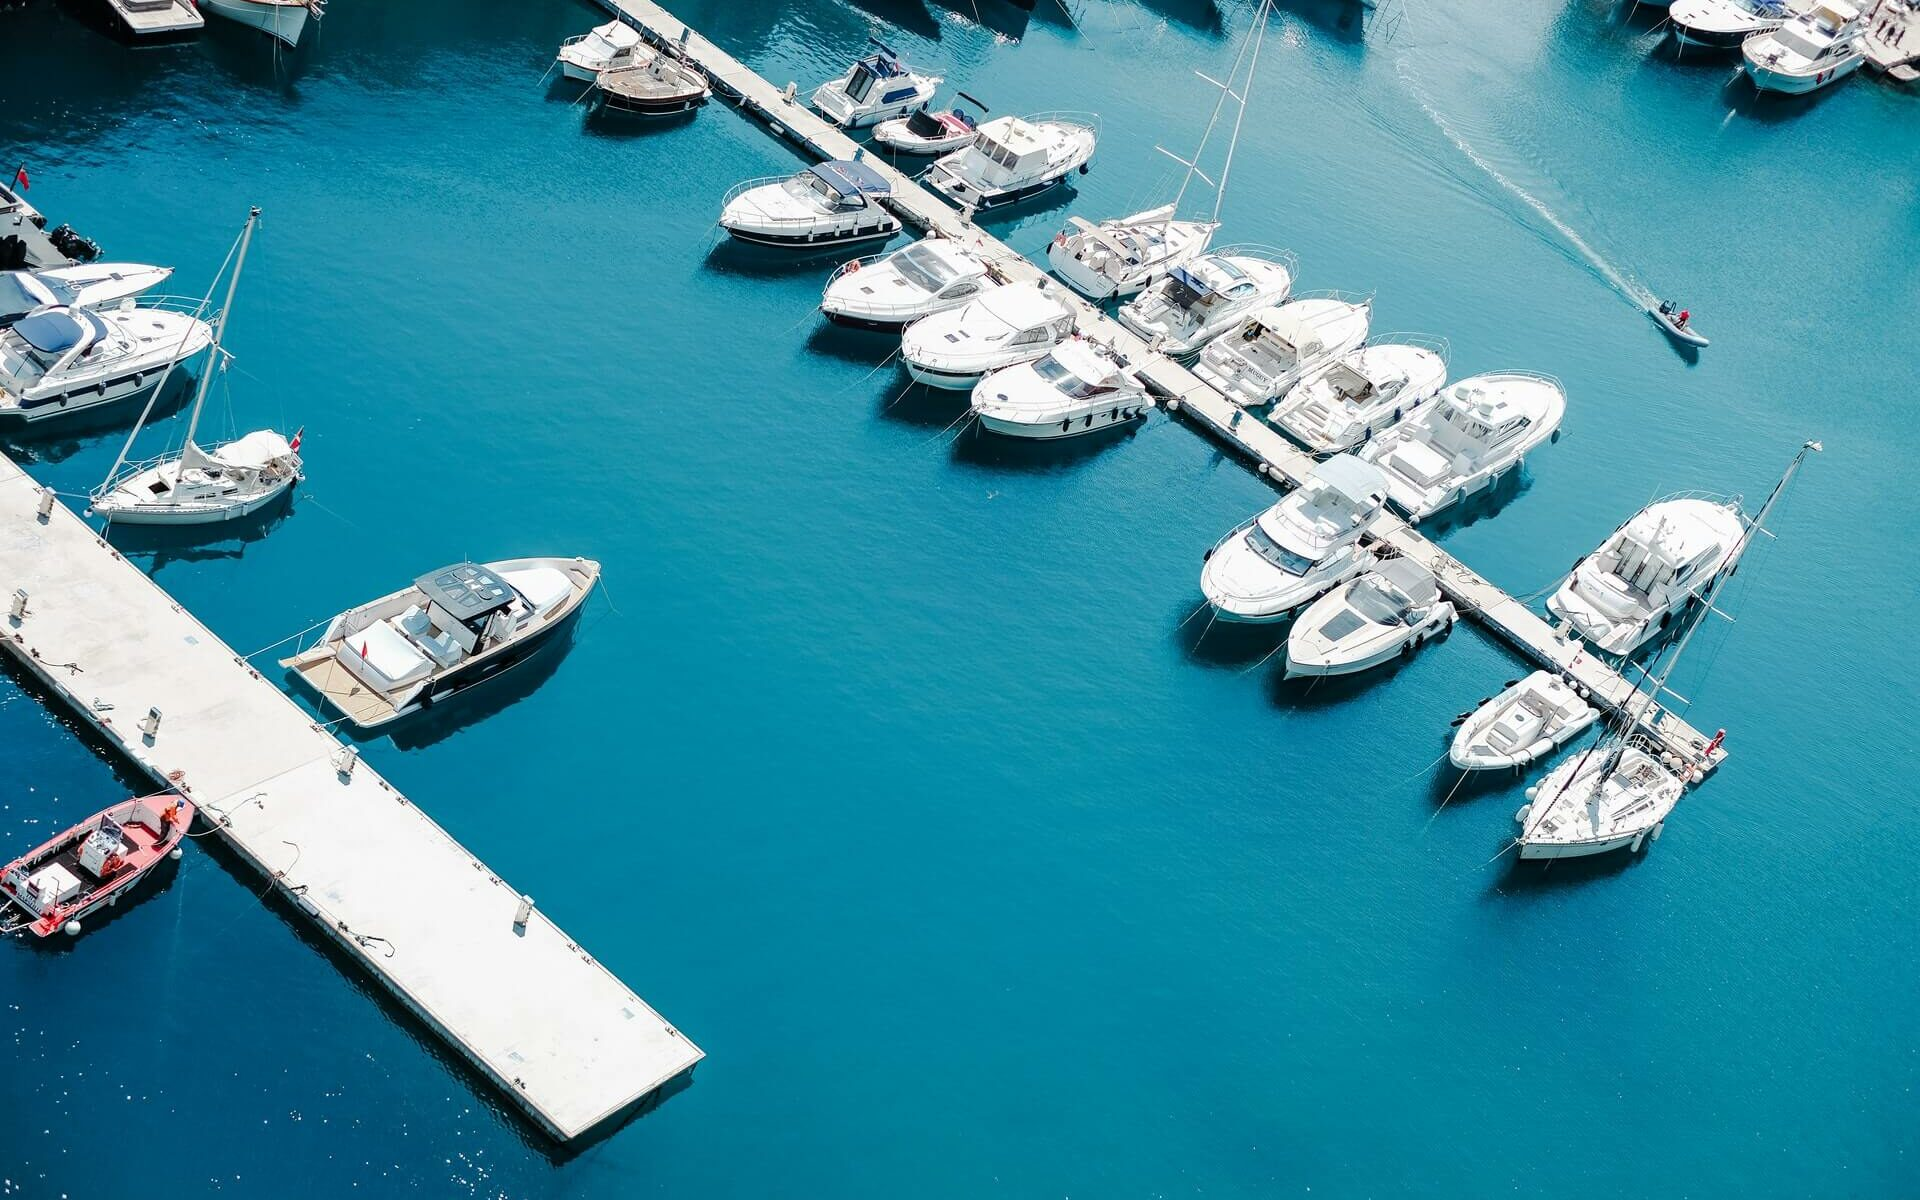 Various types of vessels at boat slips in a marina